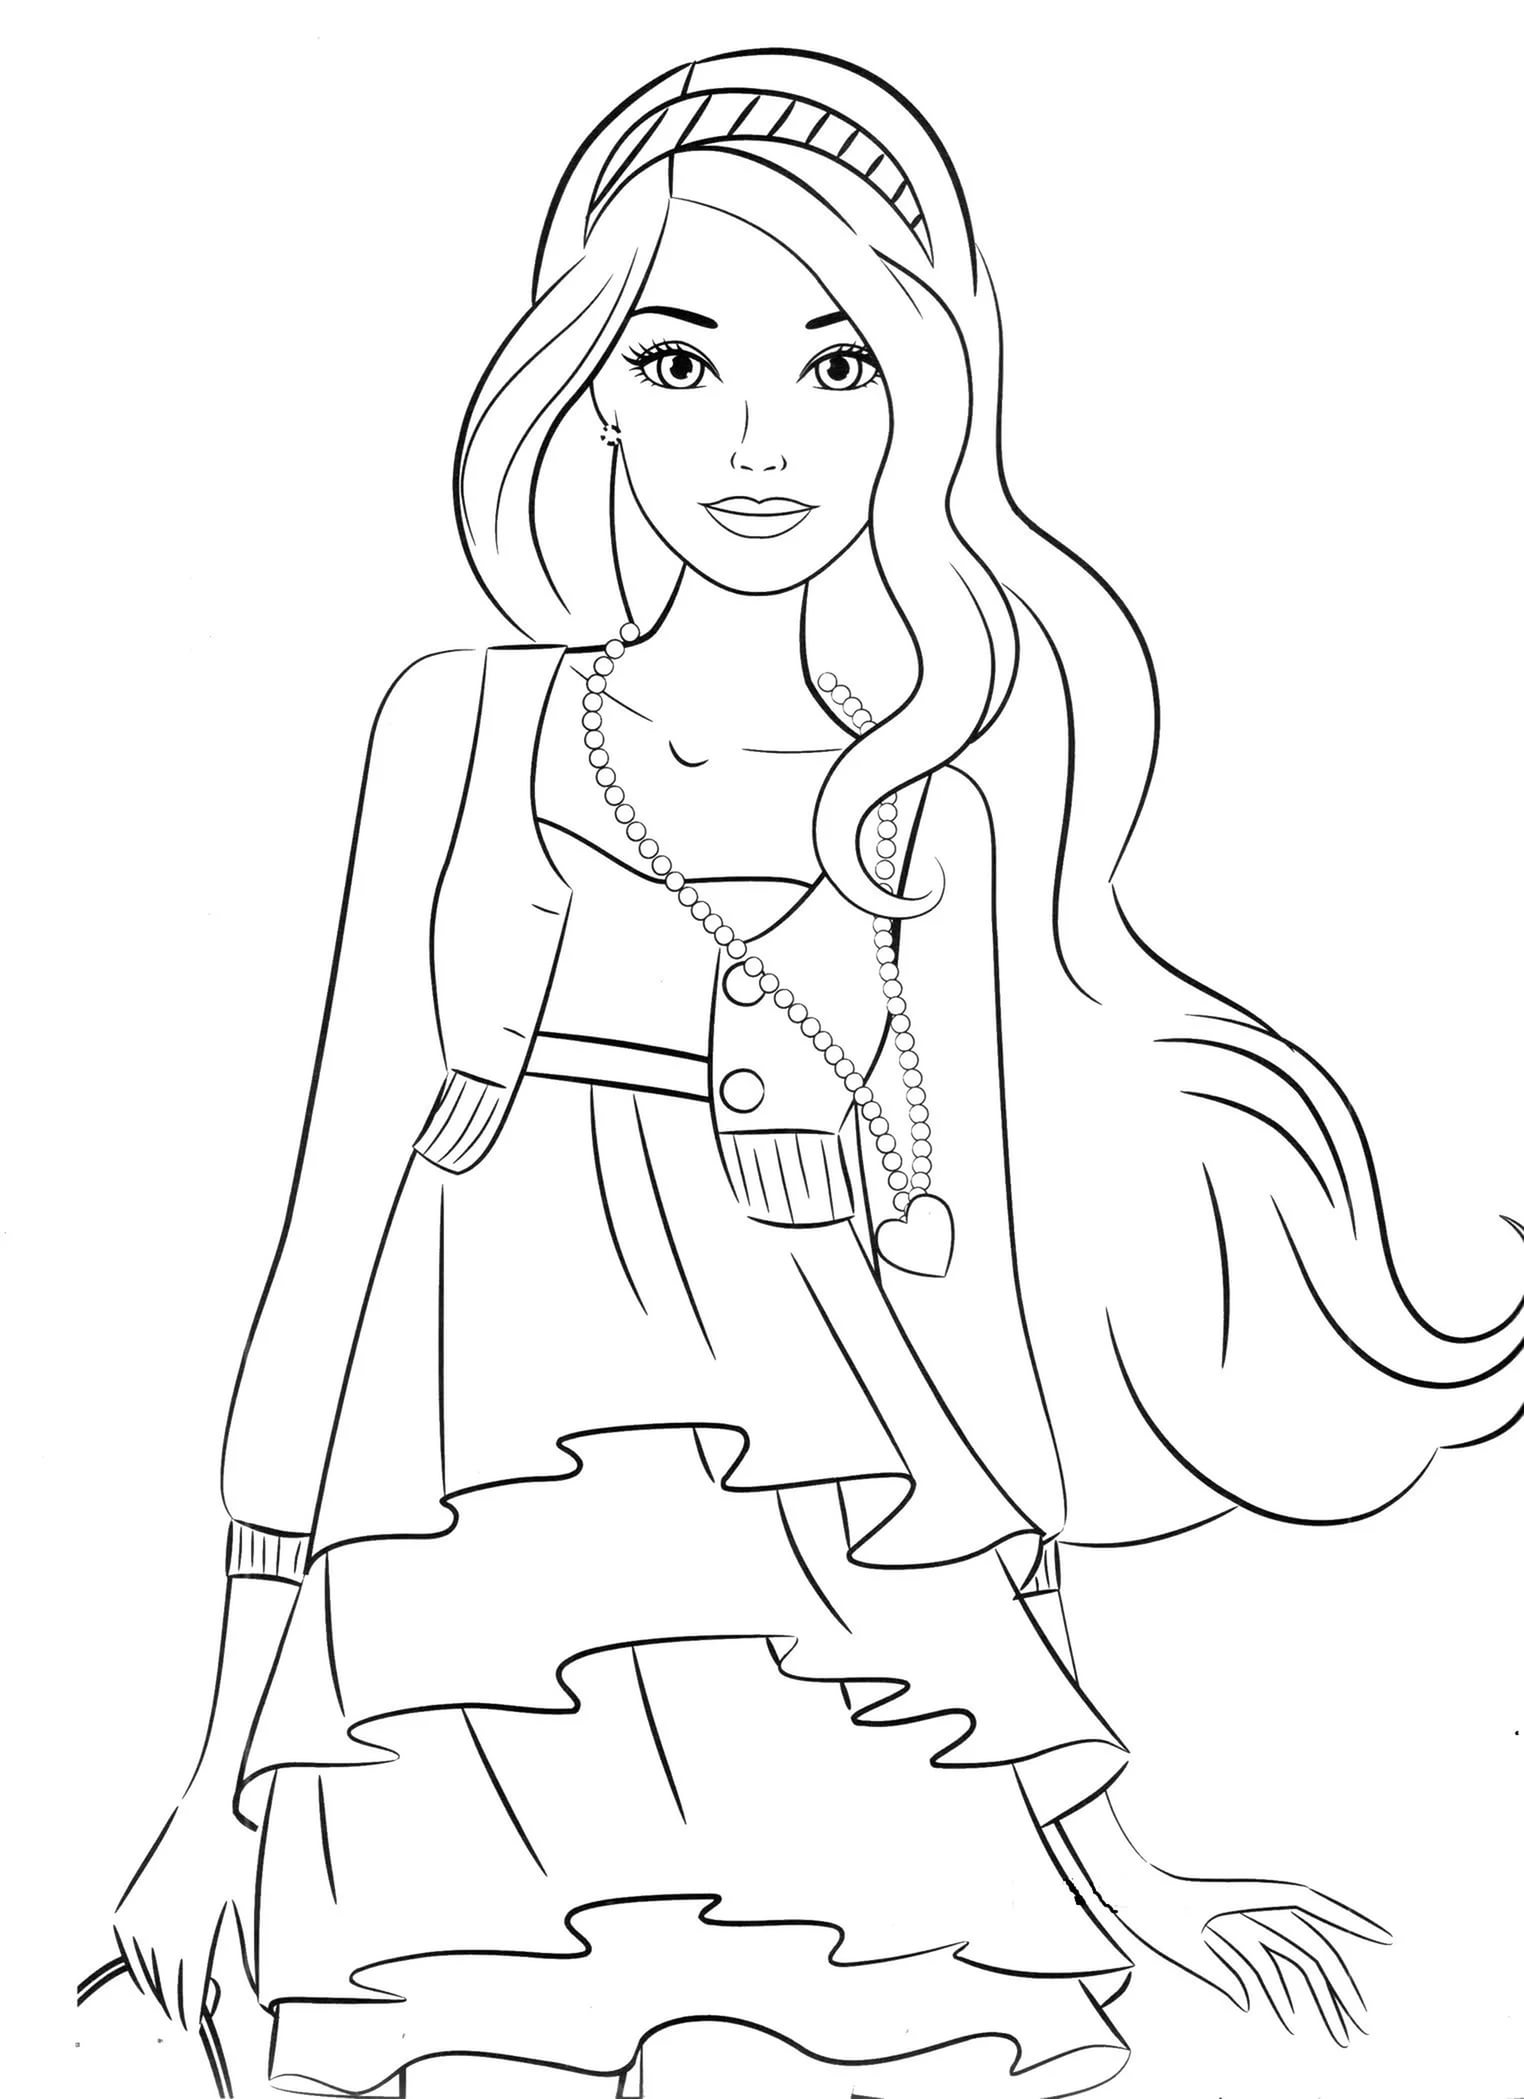 free coloring pages for 4 year olds activity sheets for 4 year olds coloring pages coloring for pages olds free 4 year coloring